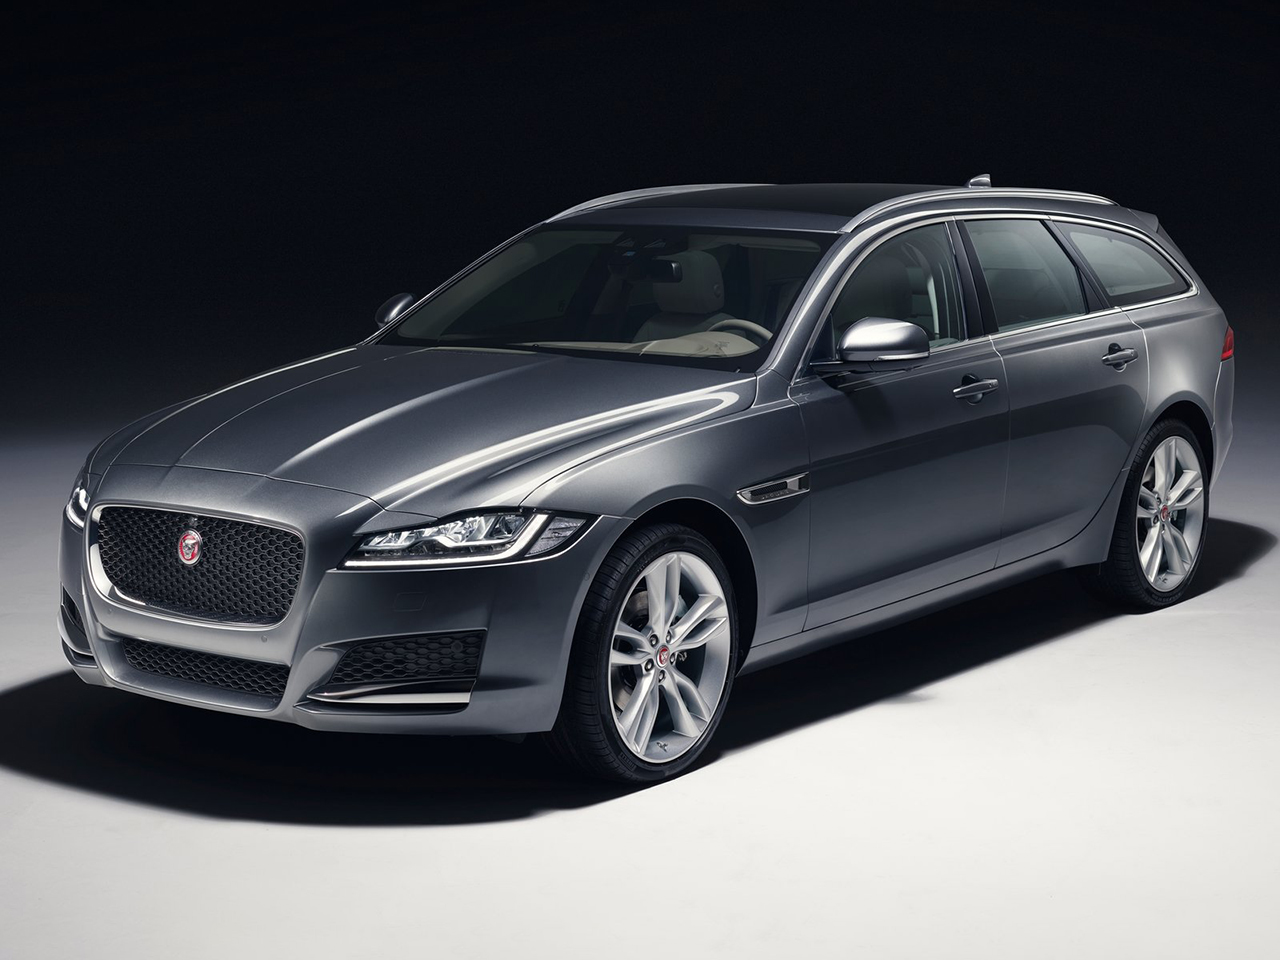 2020 Jaguar Xj Coupe Price, Design and Review